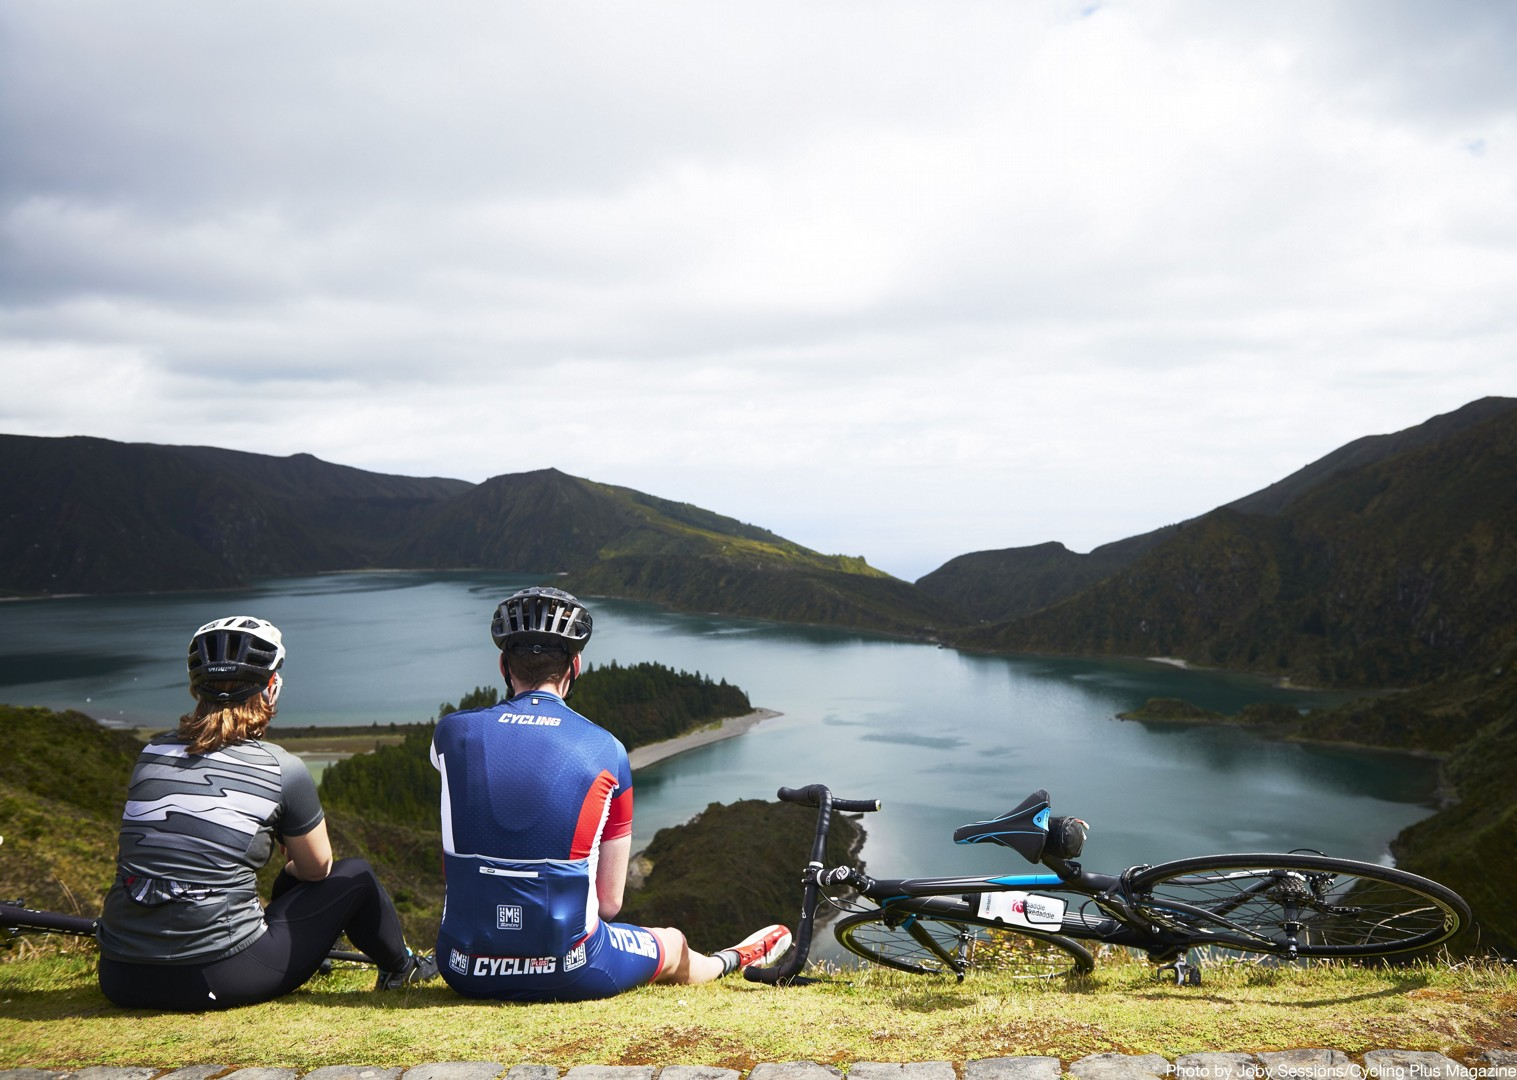 road-cycling-holiday-in-portugal-the-azores-guided.JPG - The Azores - Lost World of Sao Miguel - Guided Road Cycling Holiday - Road Cycling